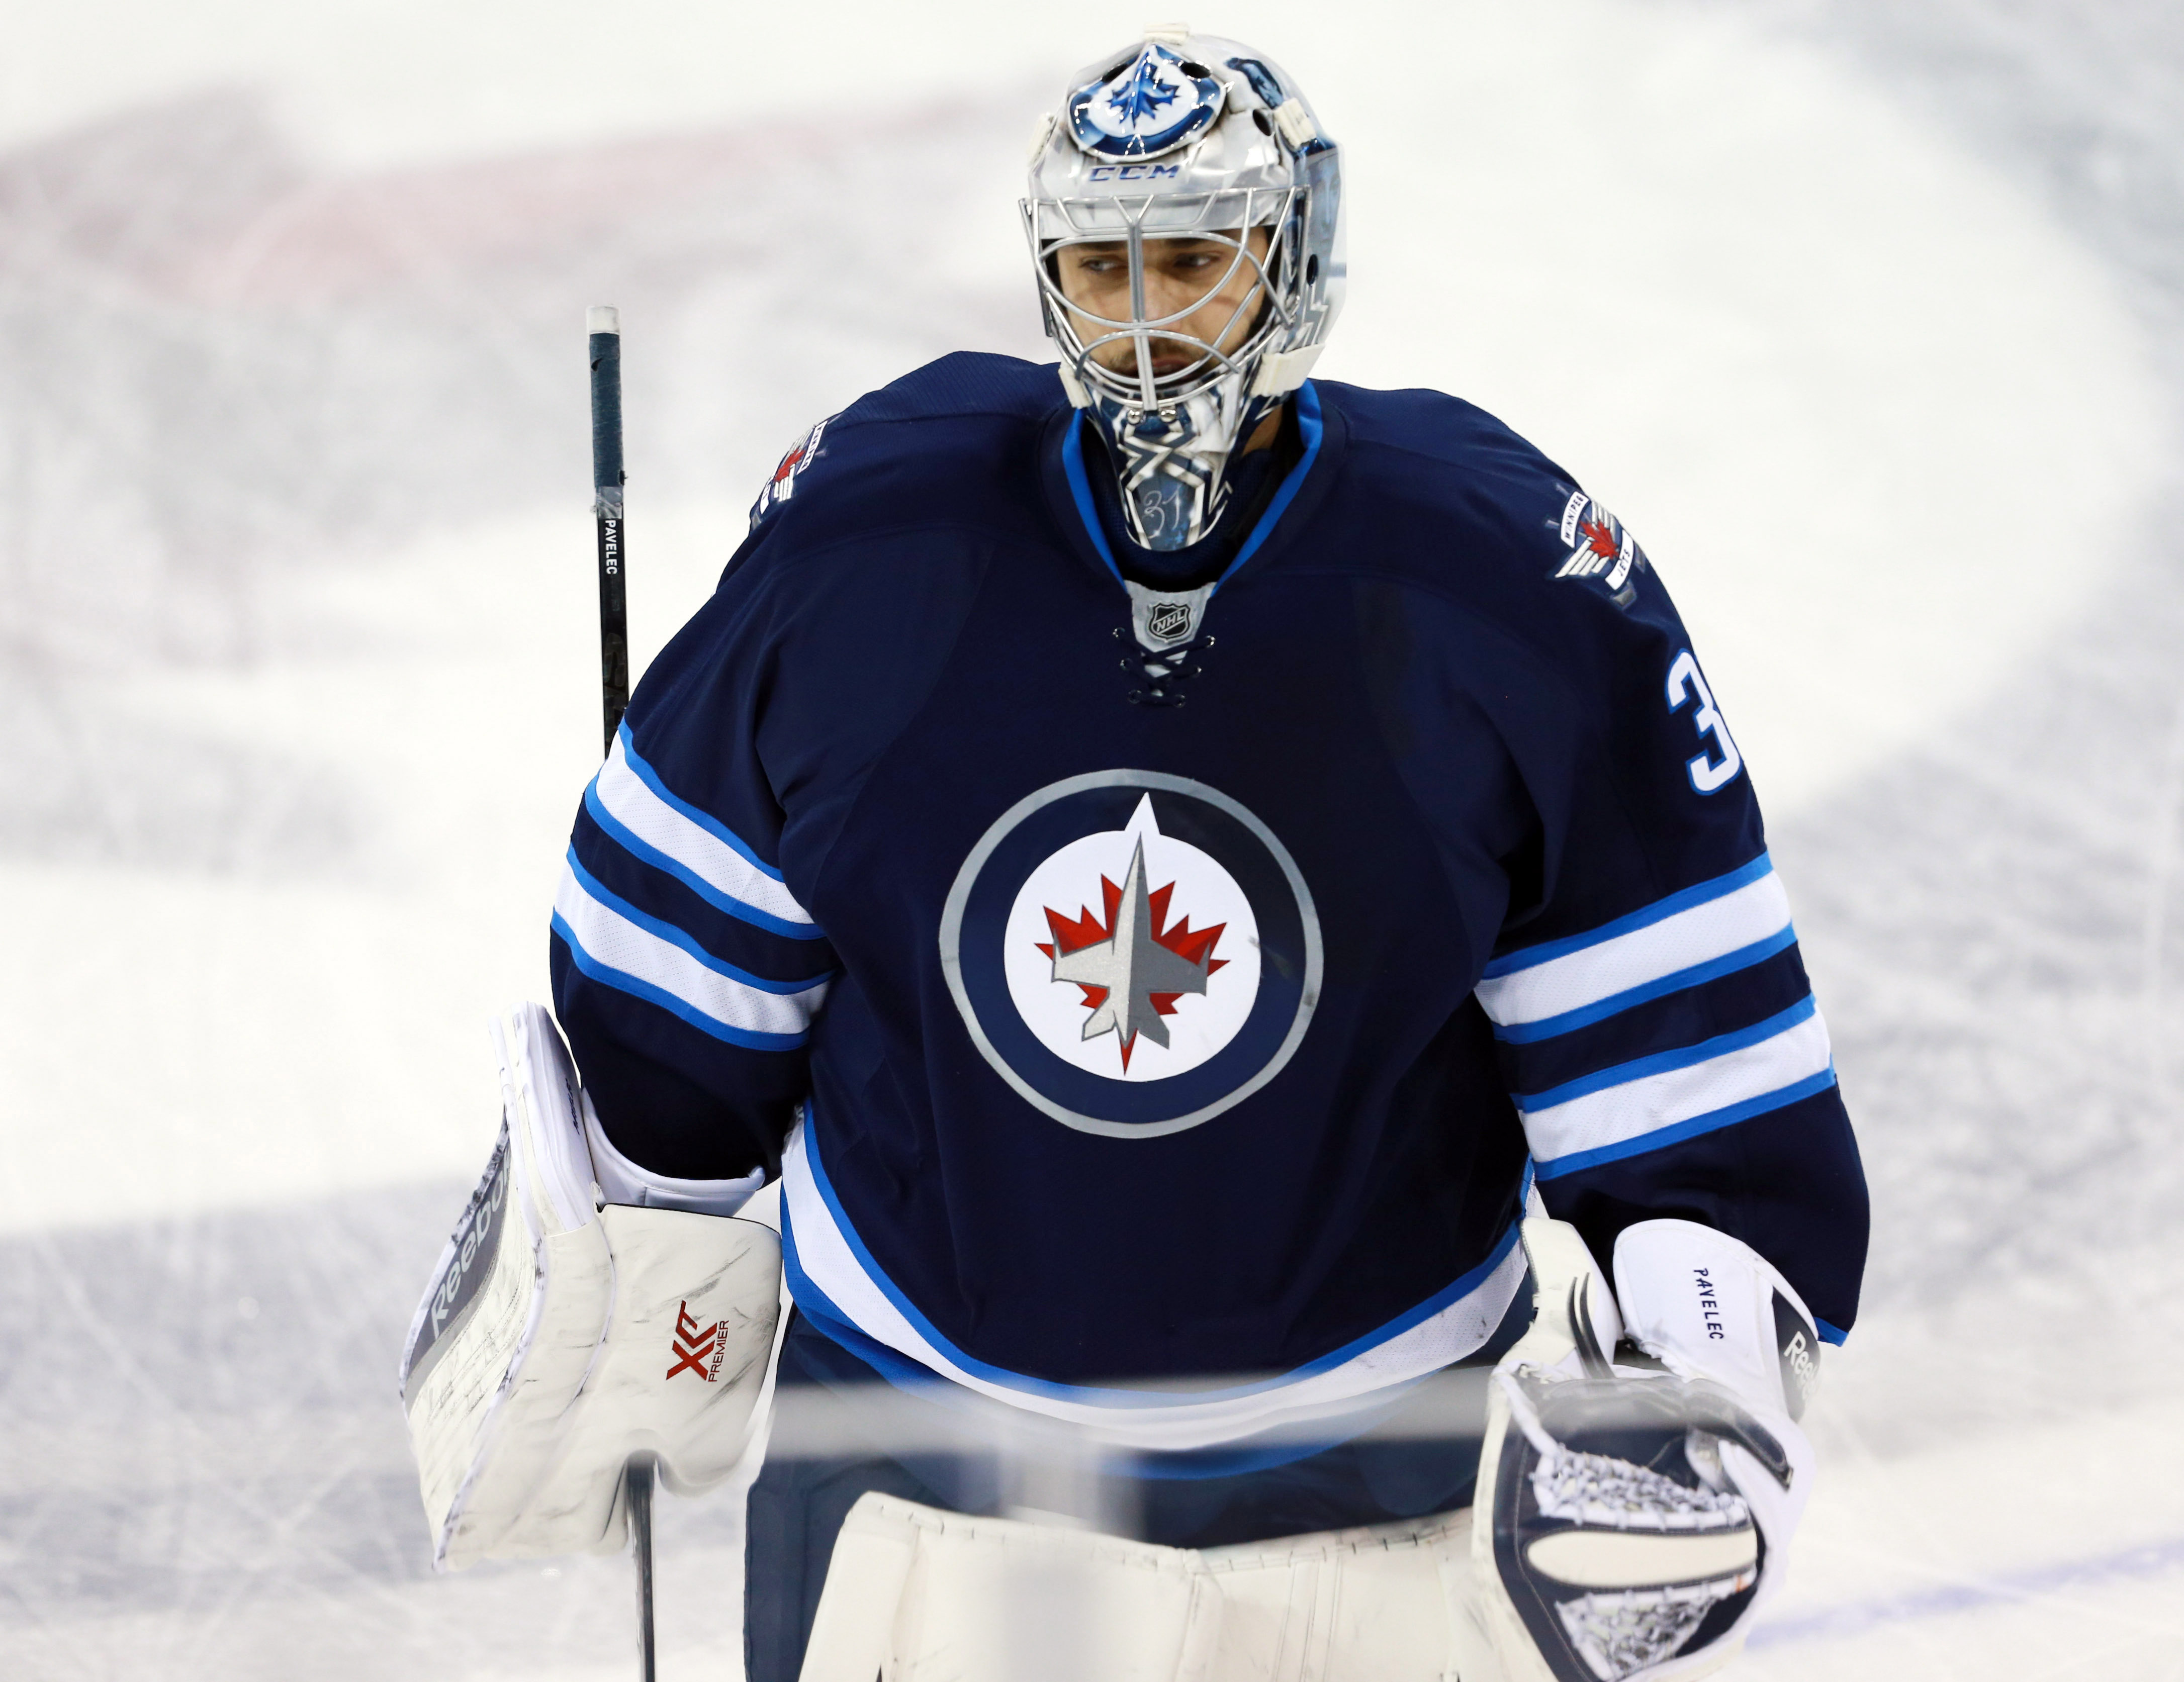 Pavelec has been side-eyed by many over his career, but had been very good this season.